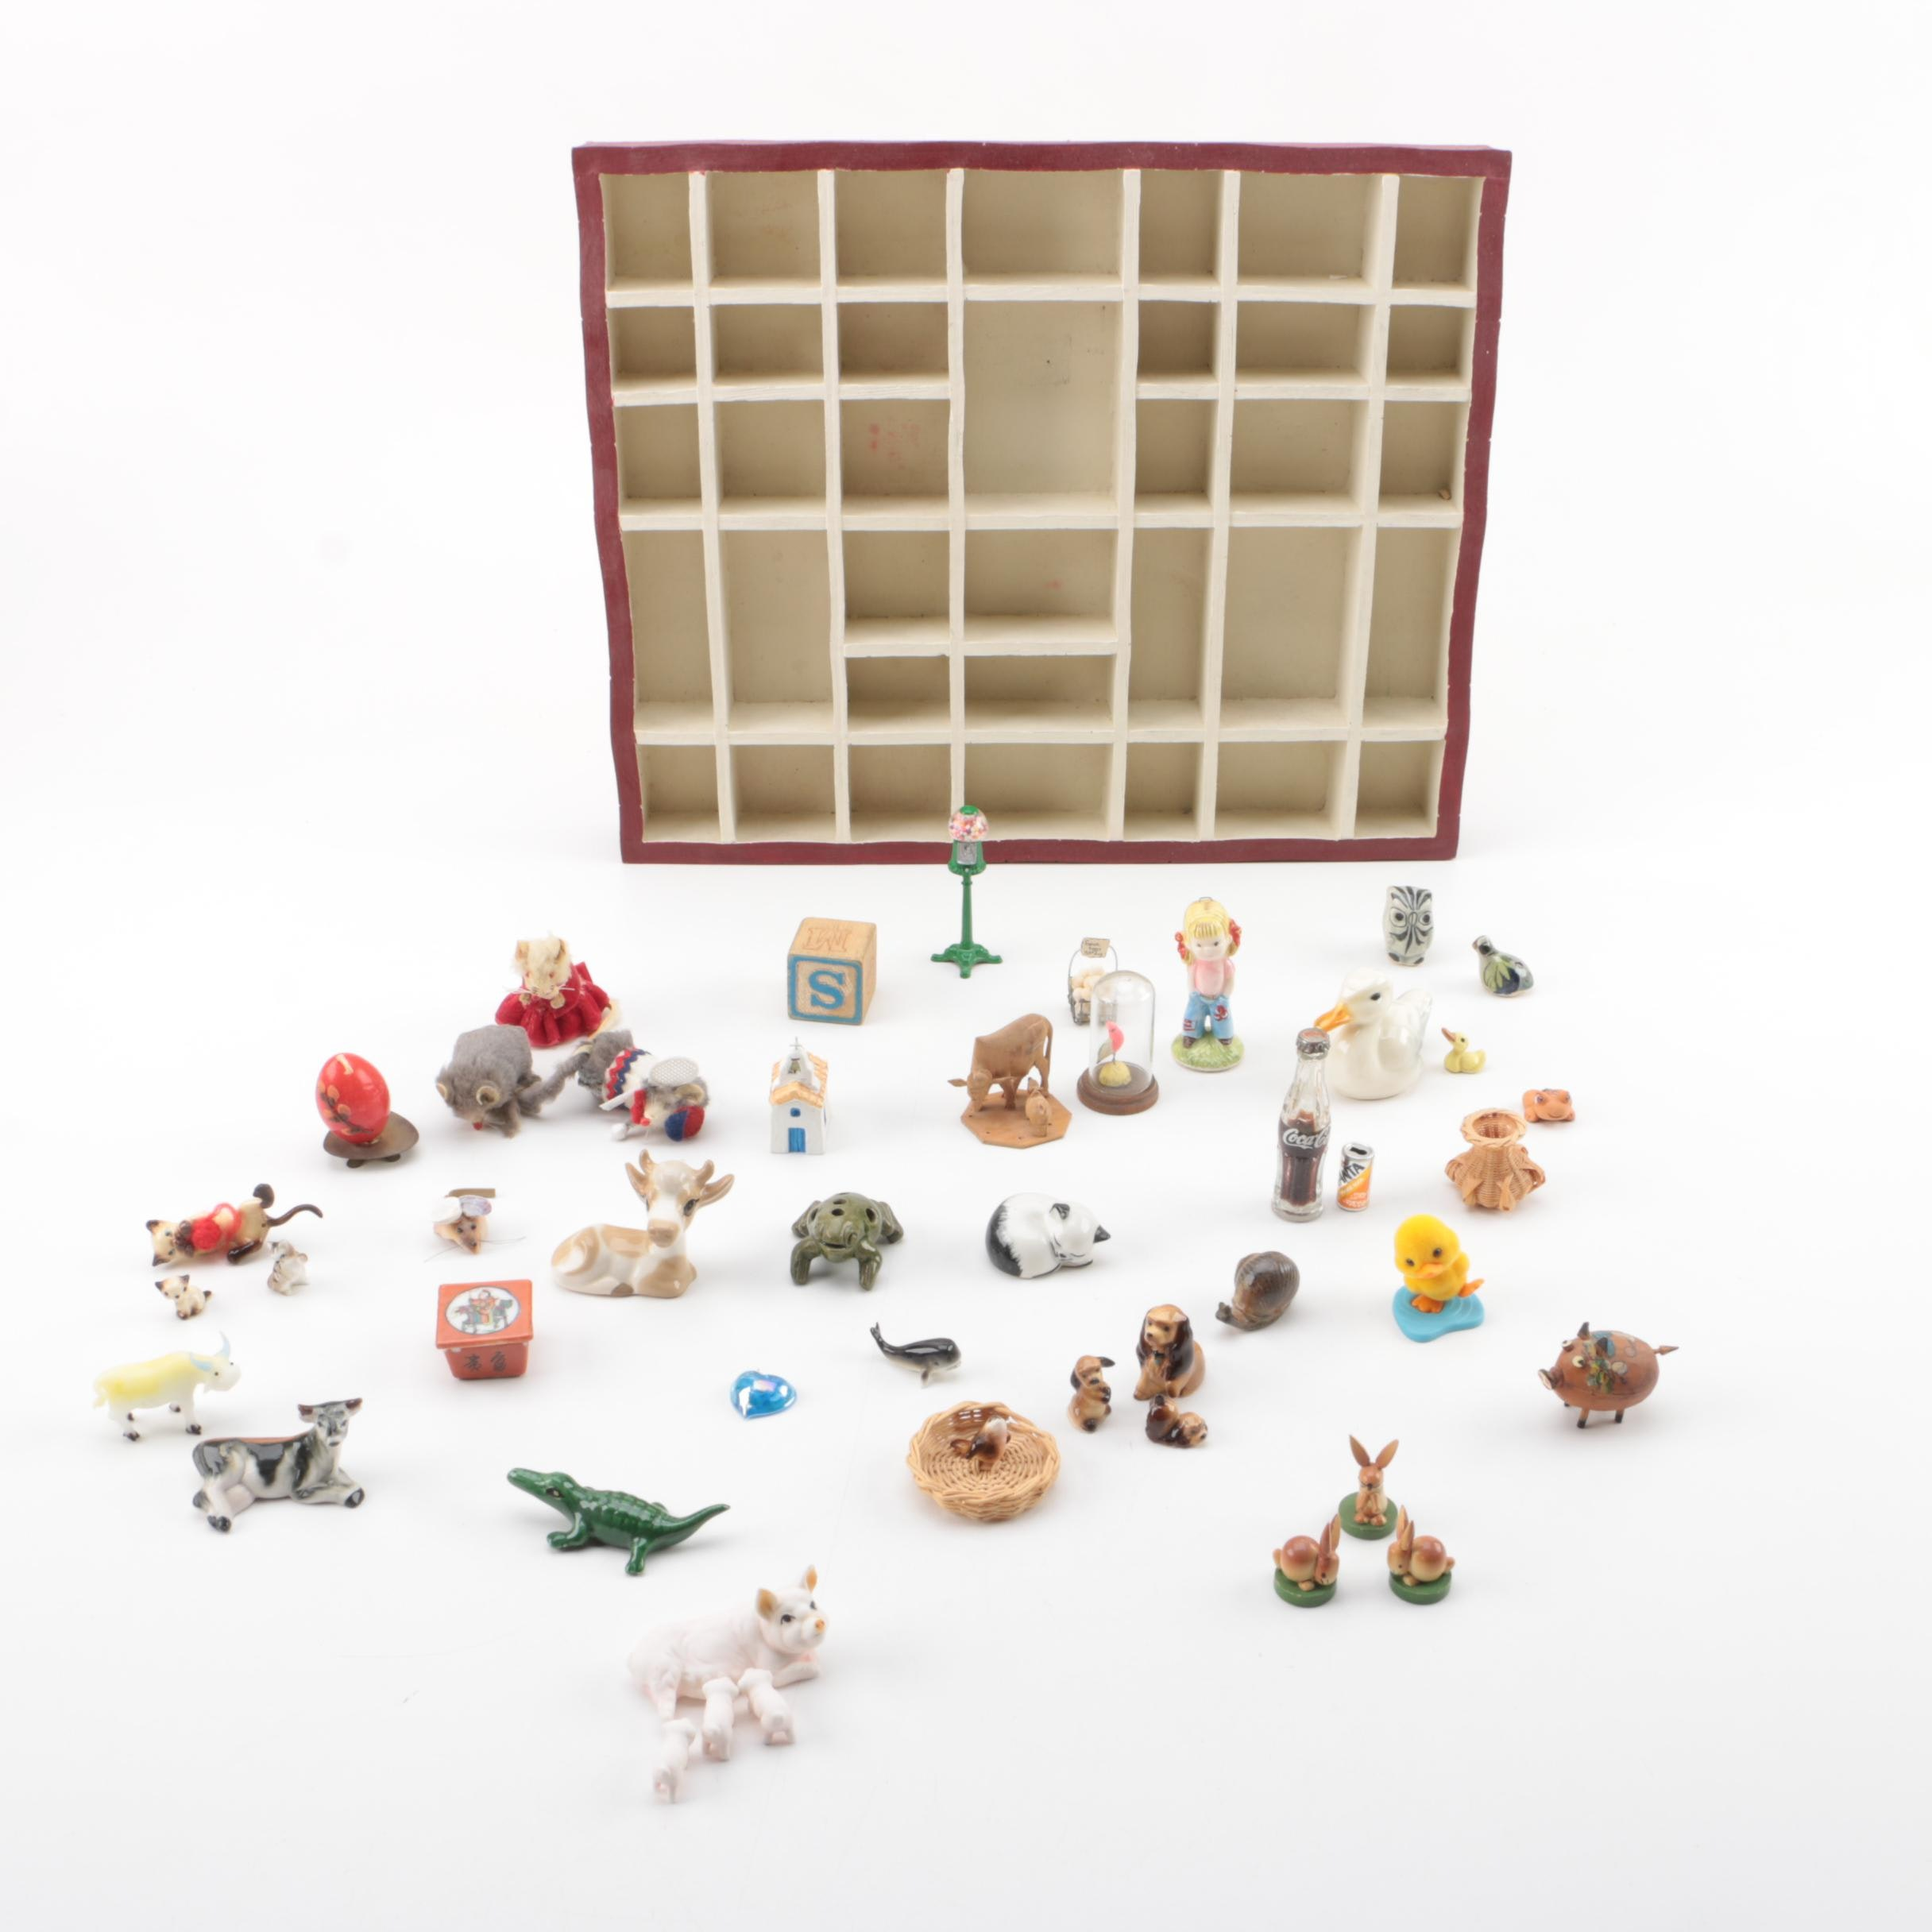 Vintage Figurines Featuring Goebel and a Display Shelf